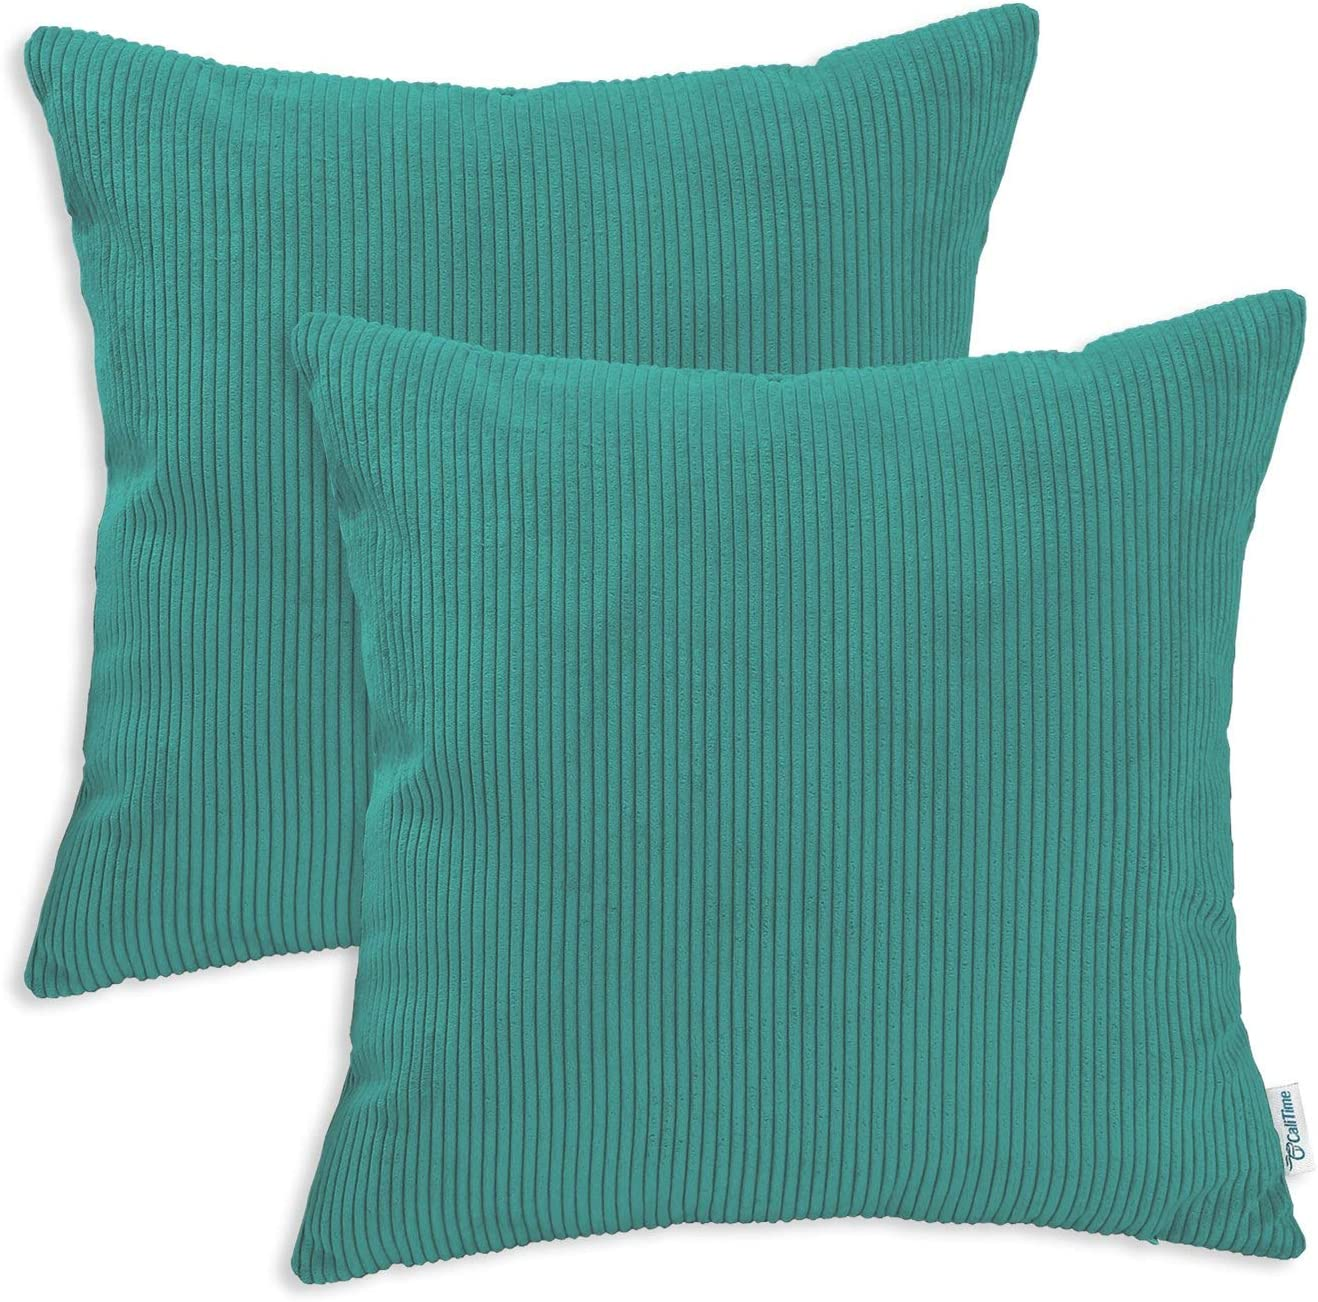 CaliTime Pack of 2 Cozy Throw Pillow Covers Cases for Couch Bed Sofa Ultra Soft Corduroy Striped Both Sides 16 X 16 Inches Teal